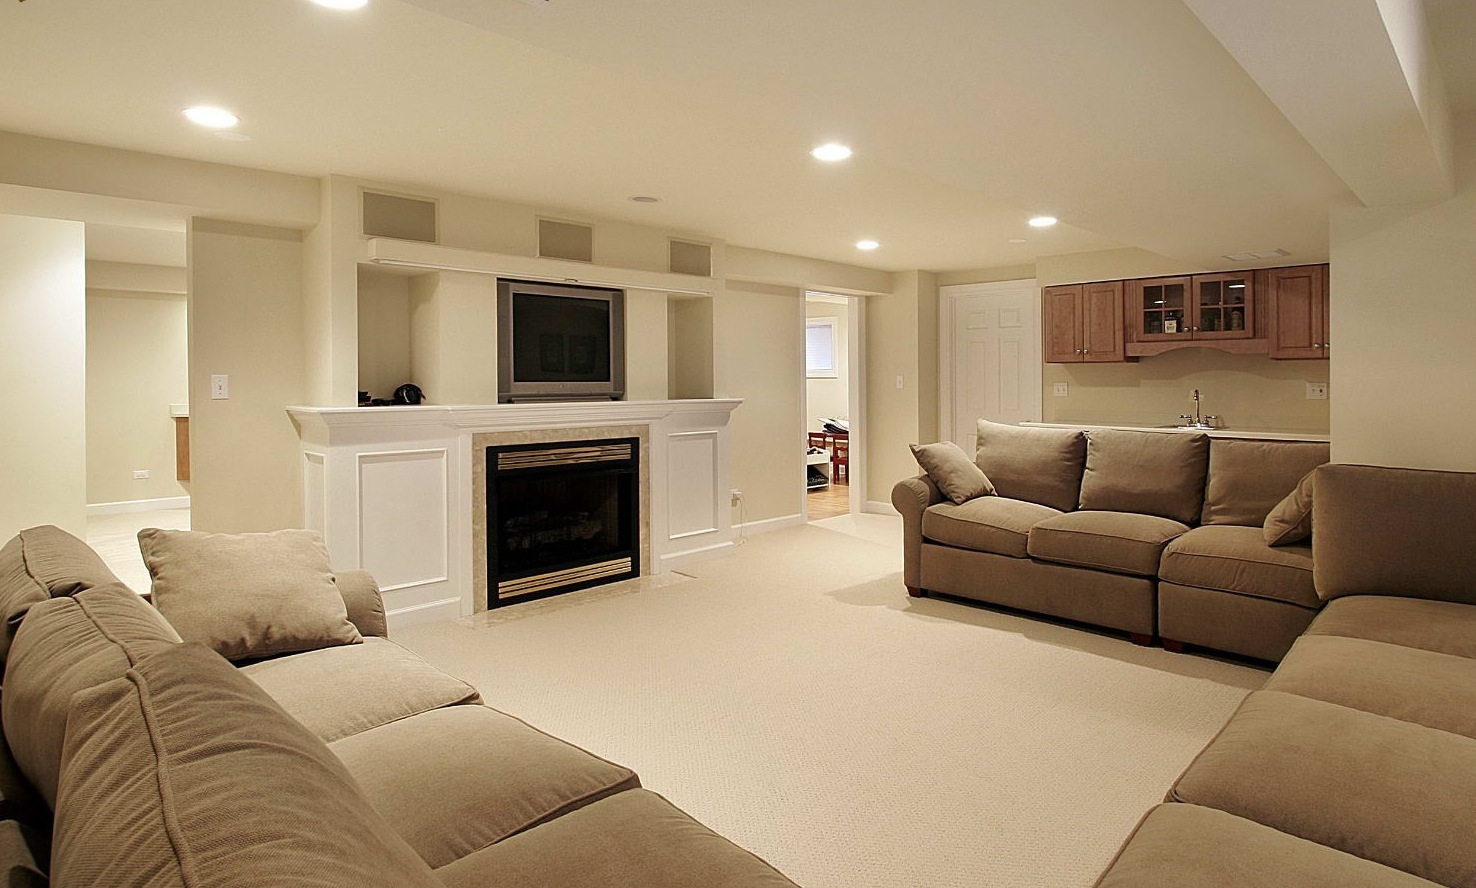 Living Room Renovation Ideas Brilliant 30 Basement Remodeling Ideas & Inspiration Design Ideas